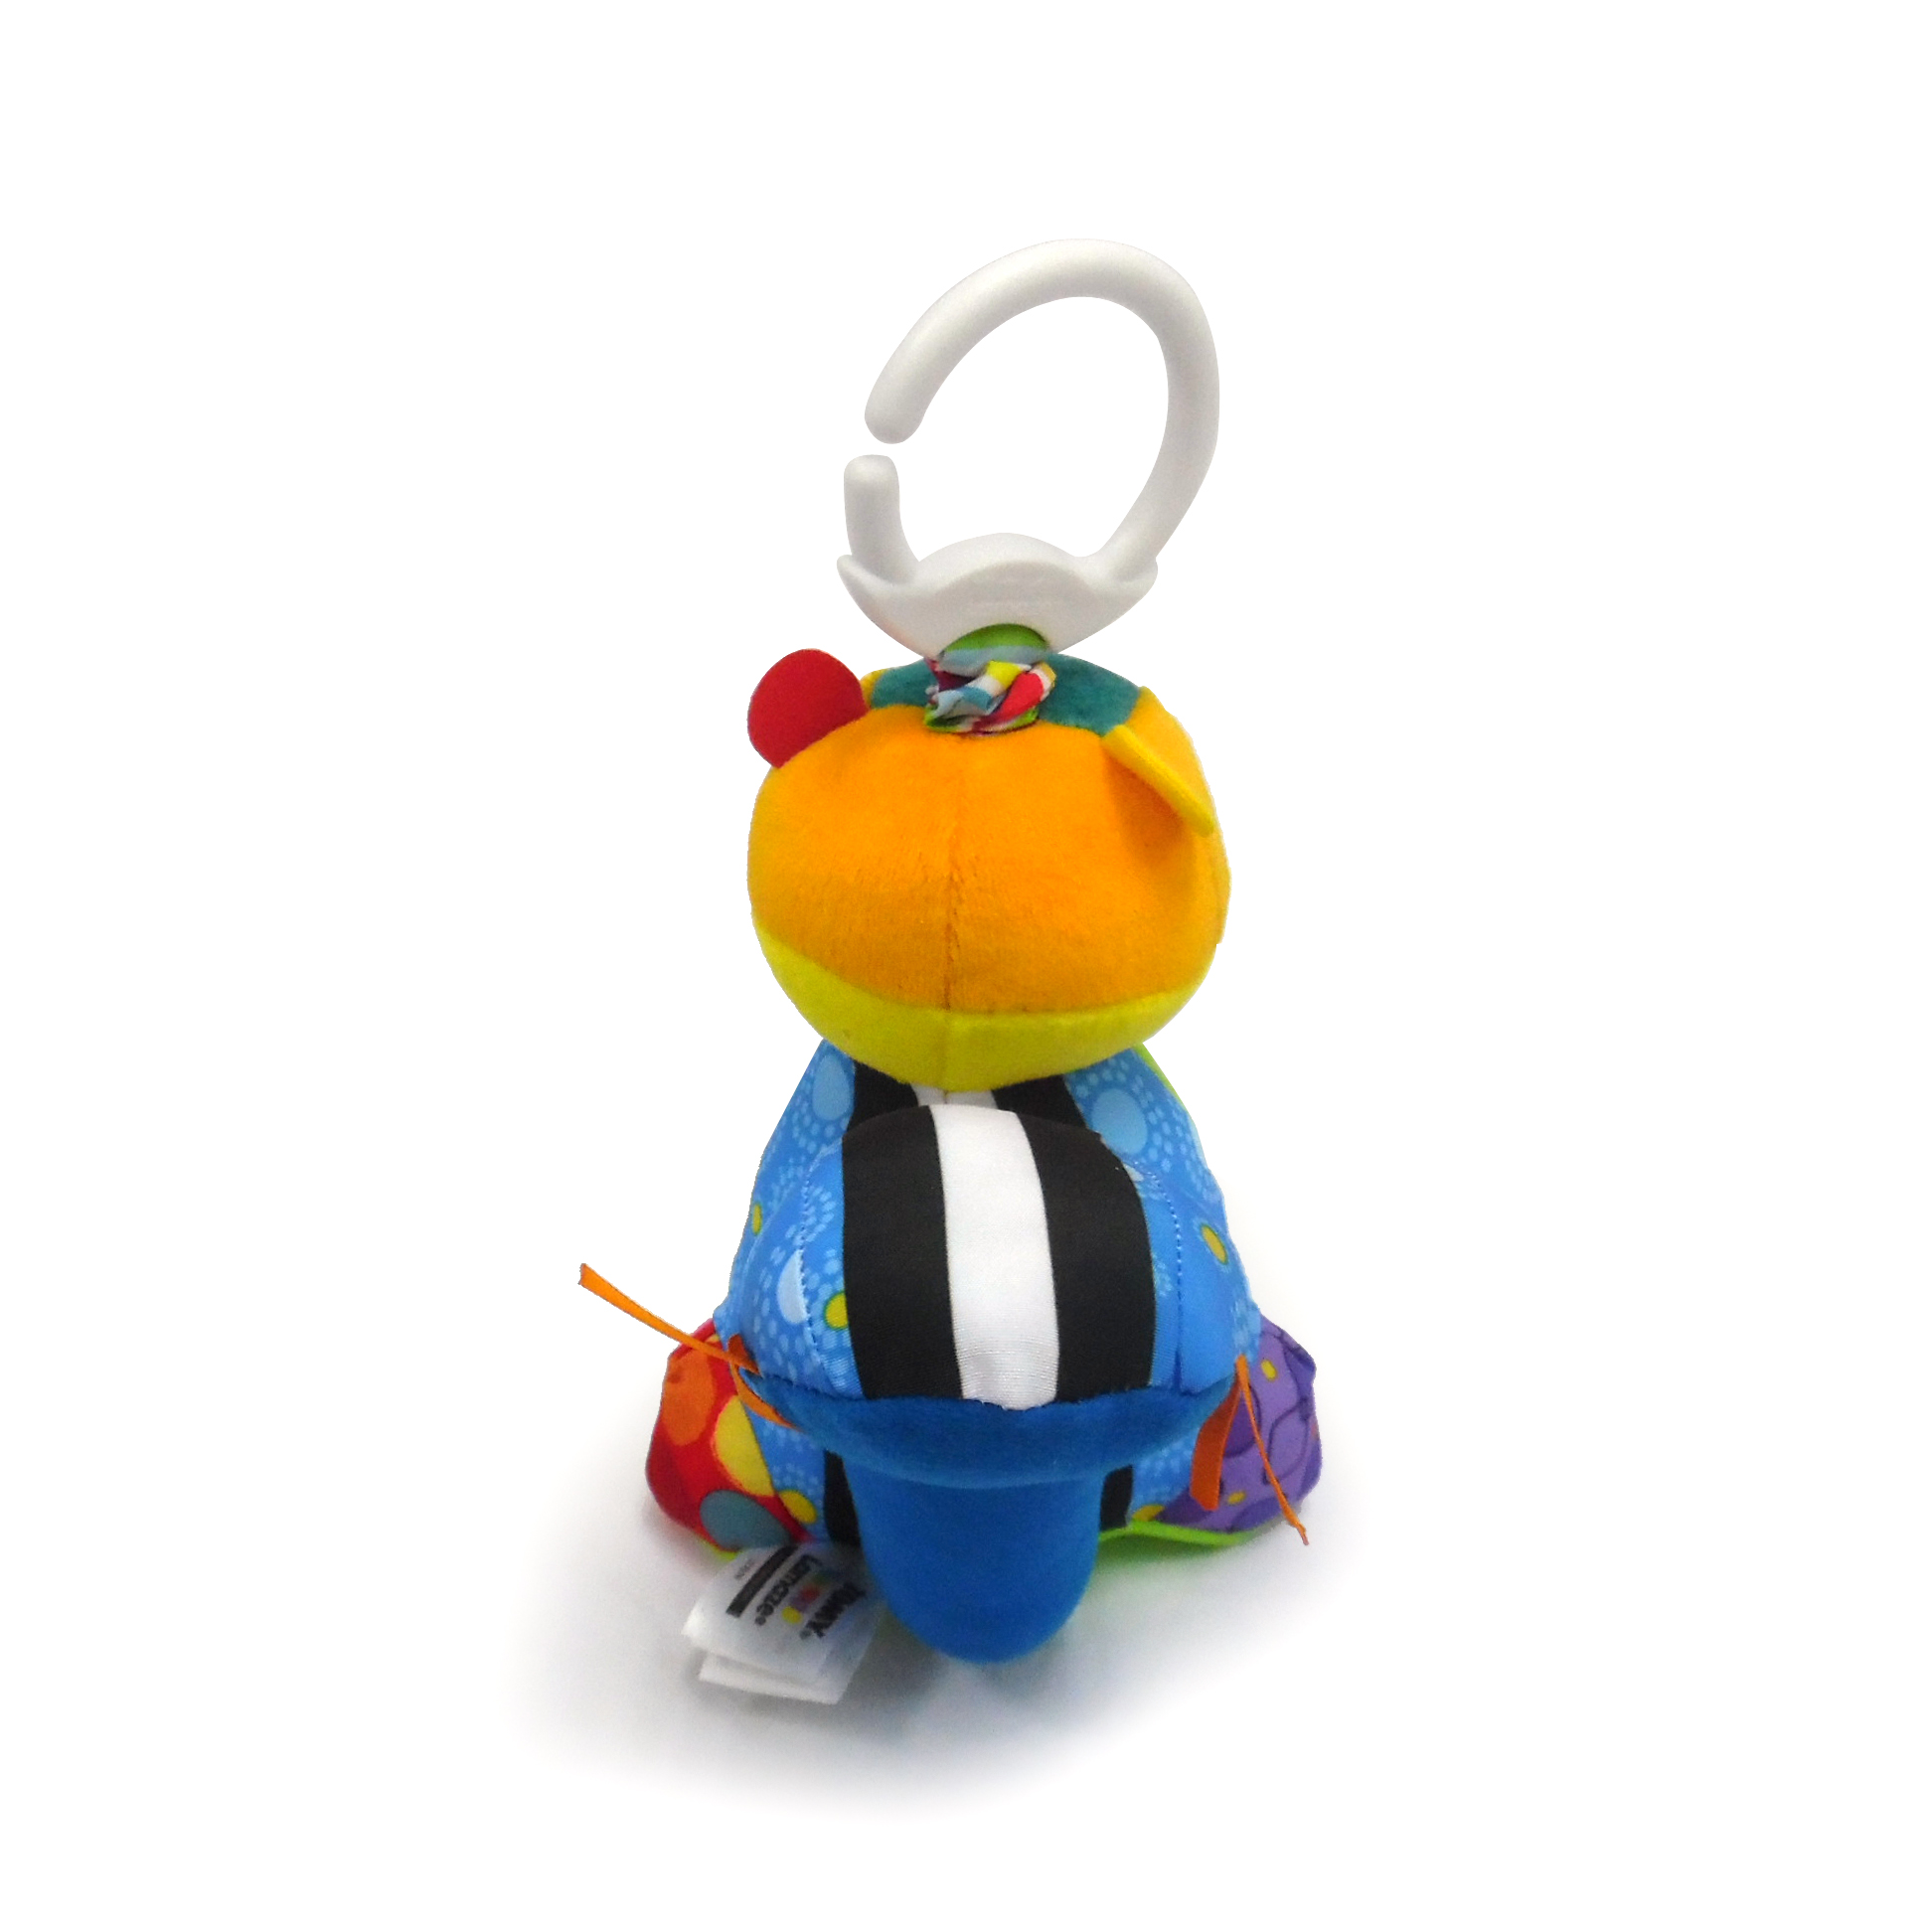 TOMY Lamaze Munching Max chipmunk toy